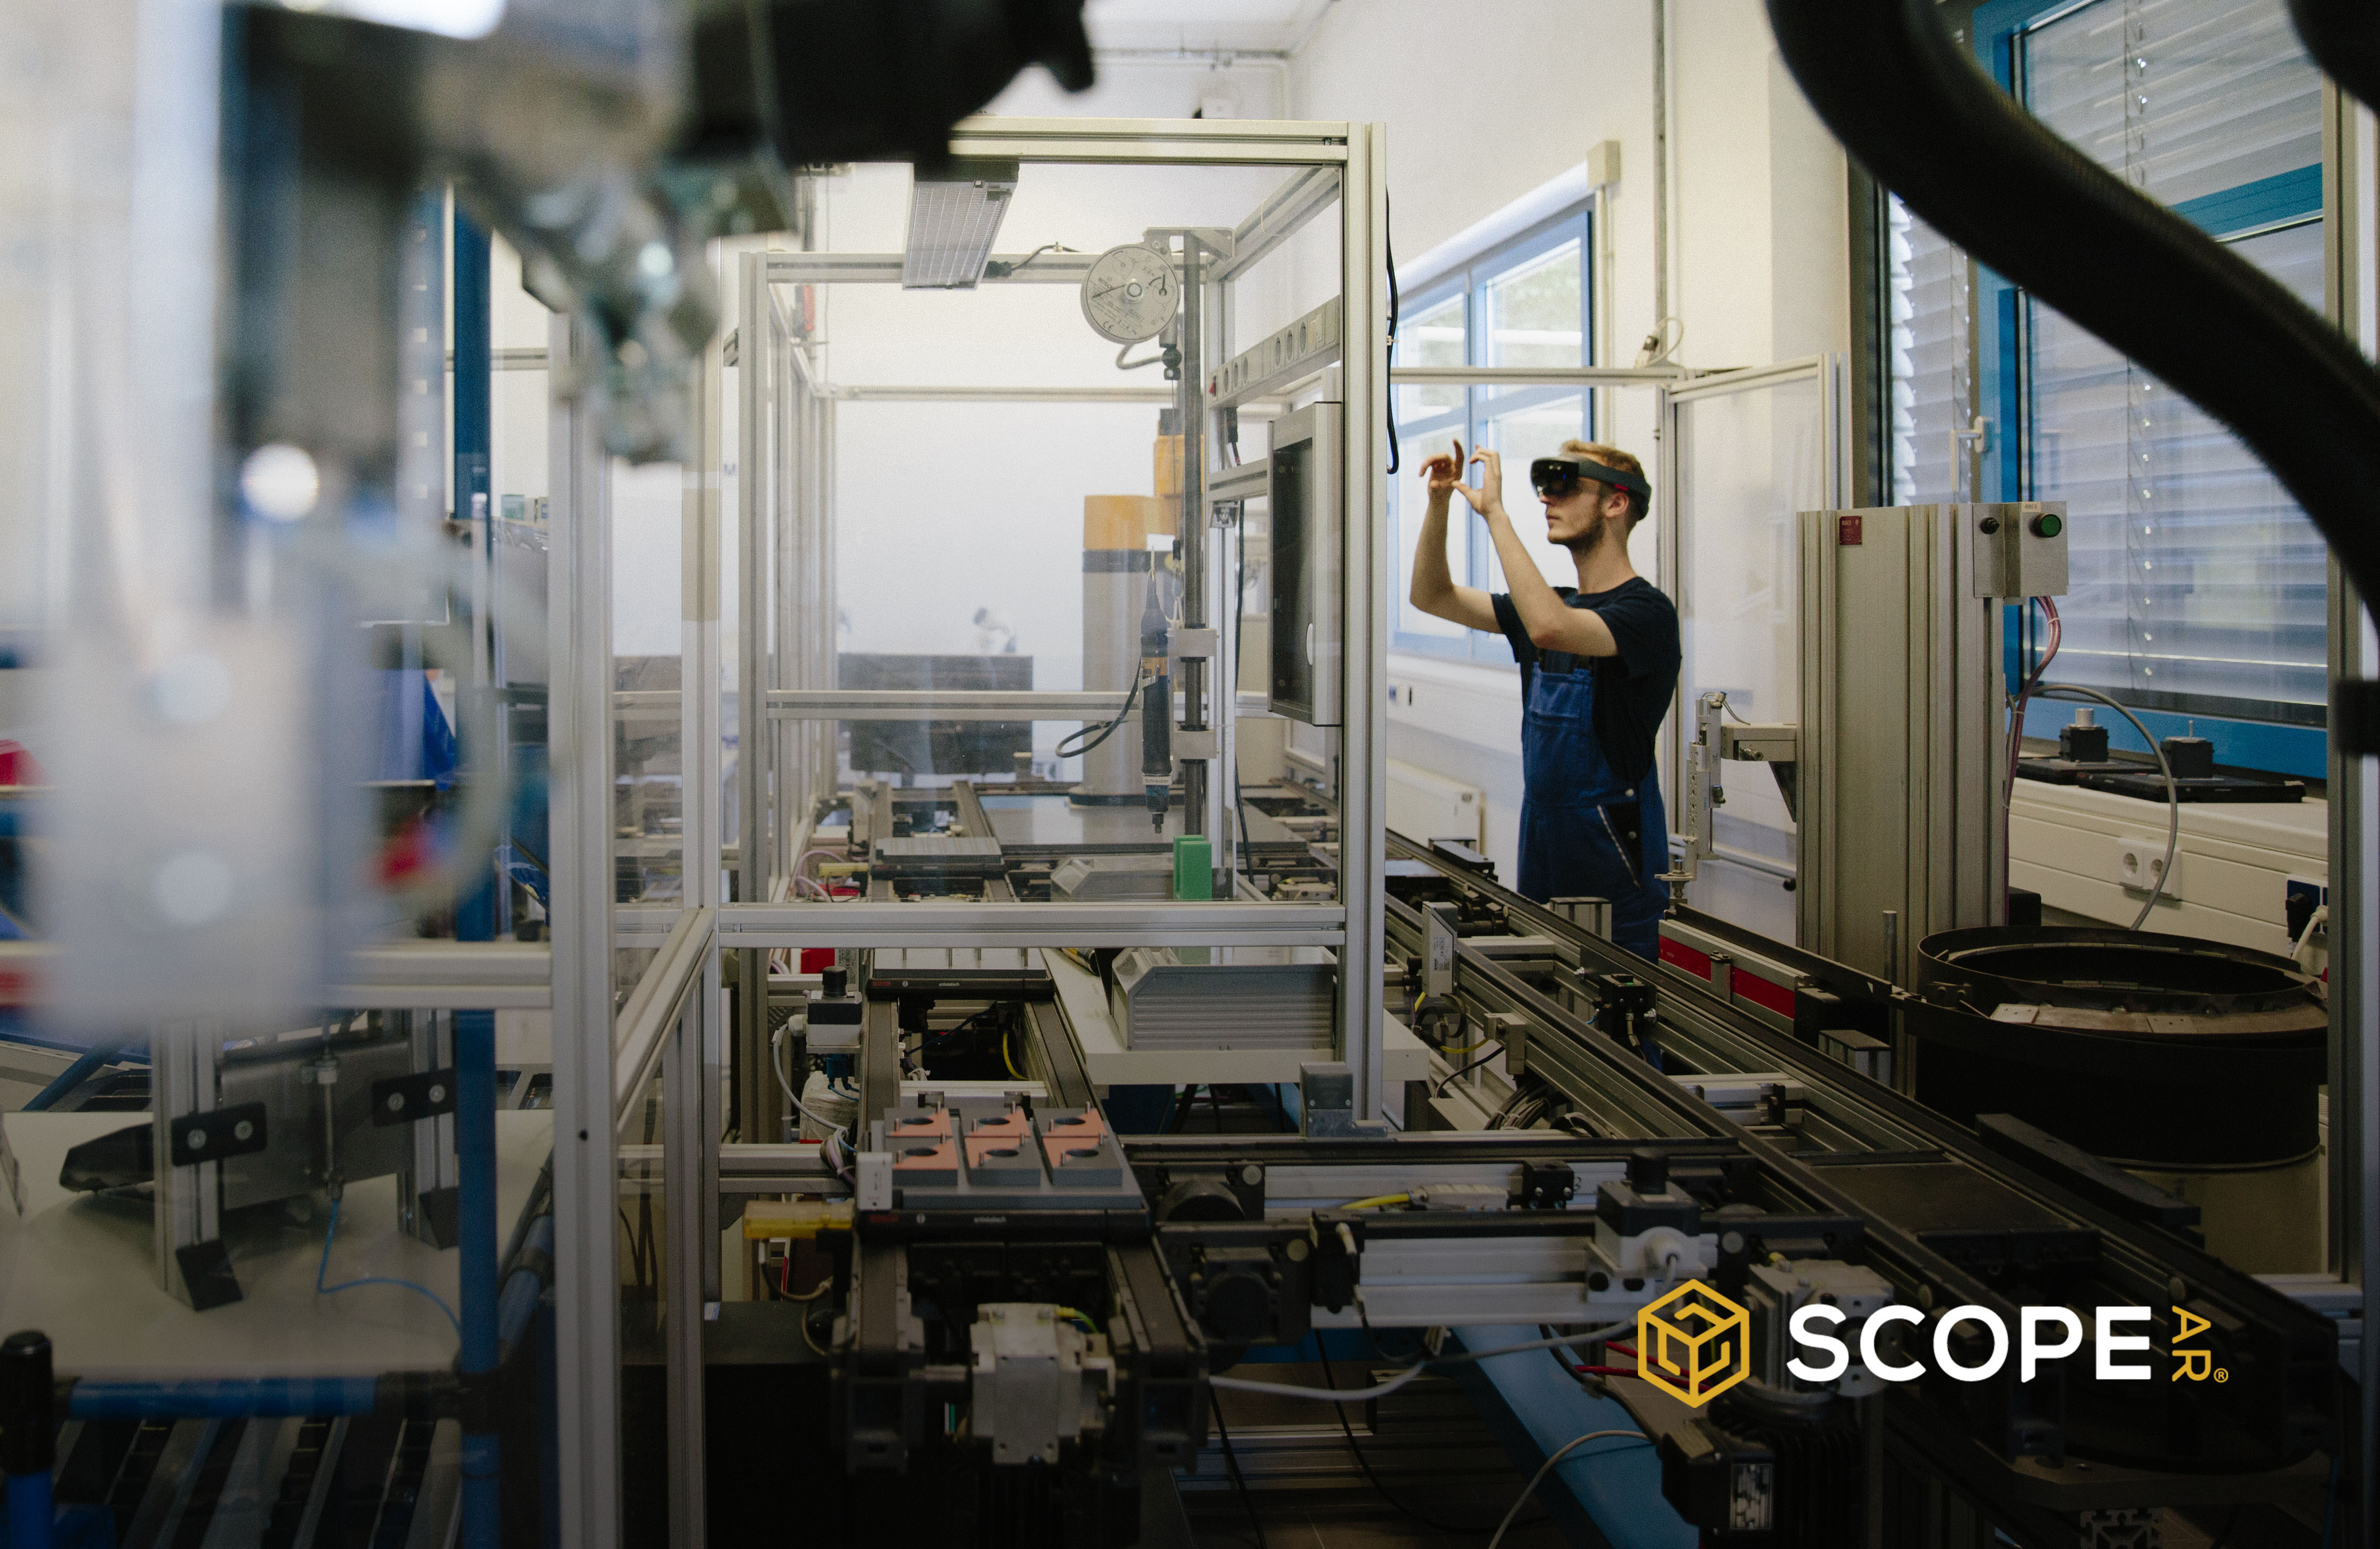 Scope AR partners with ServiceMax to bring enhanced visual knowledge to technicians